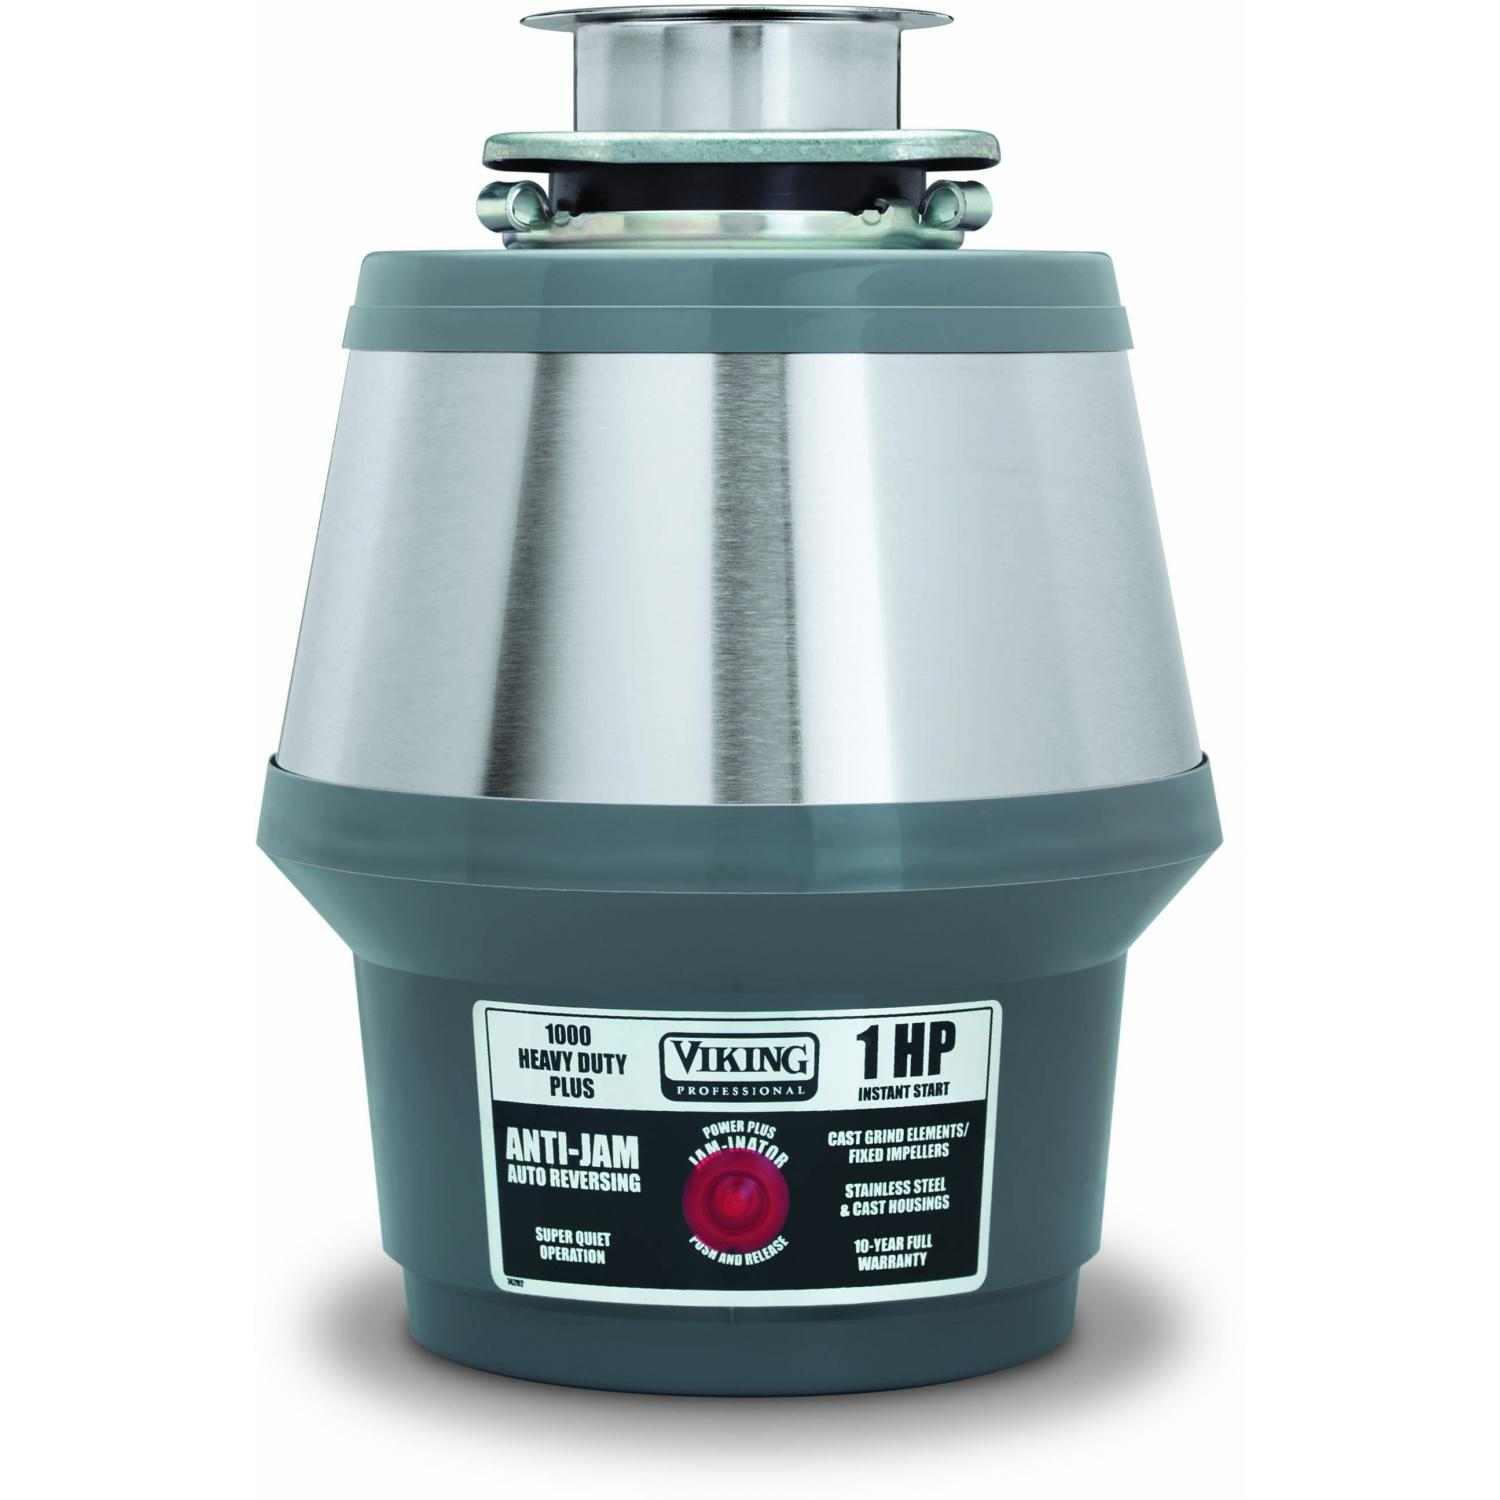 Viking VCFW1000 1 HP Continuous Feed Food Waste Disposer